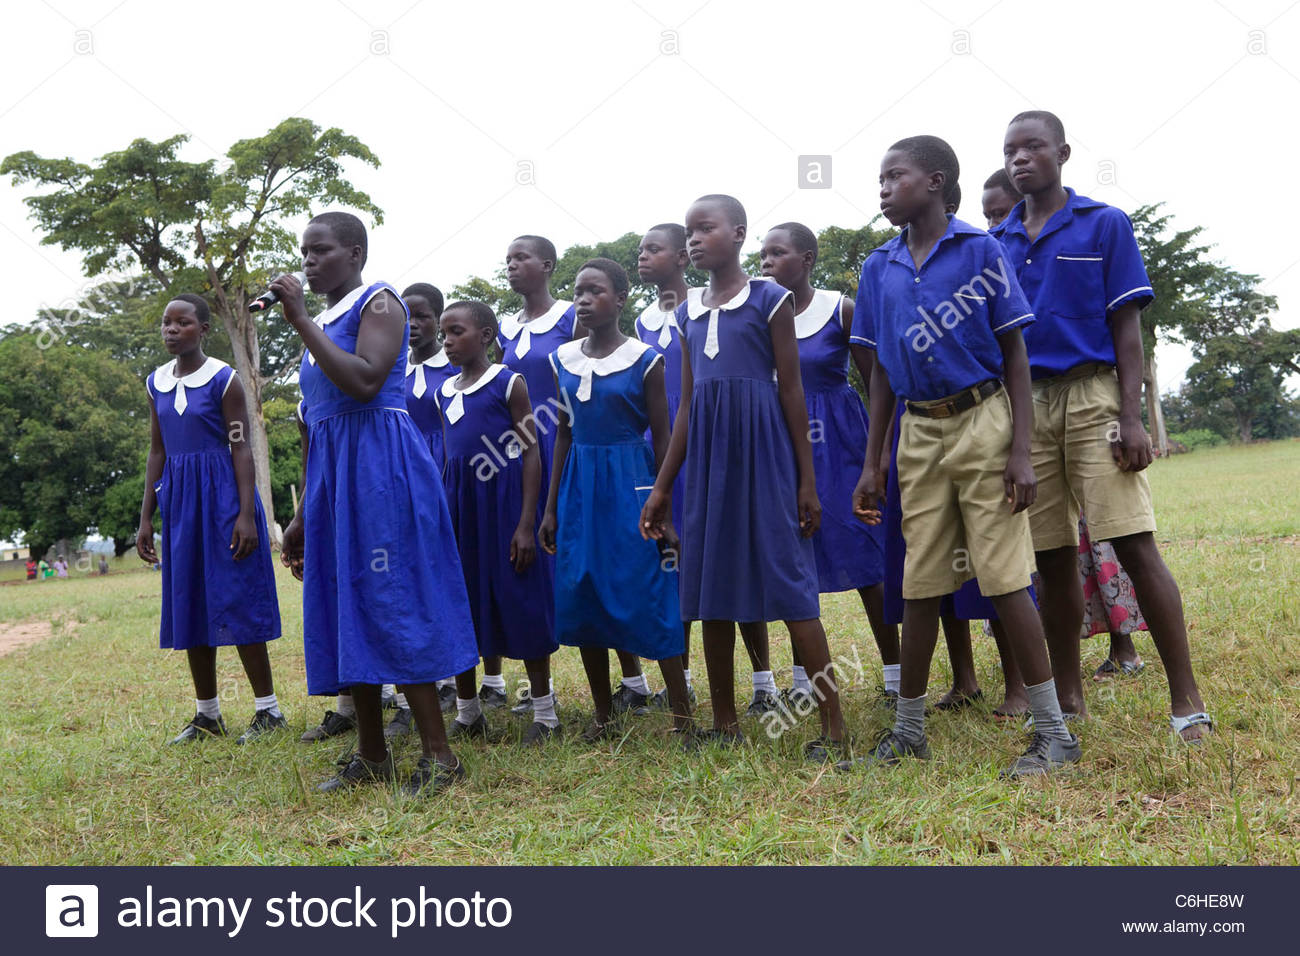 A group of school children sing outside their school. - Stock Image